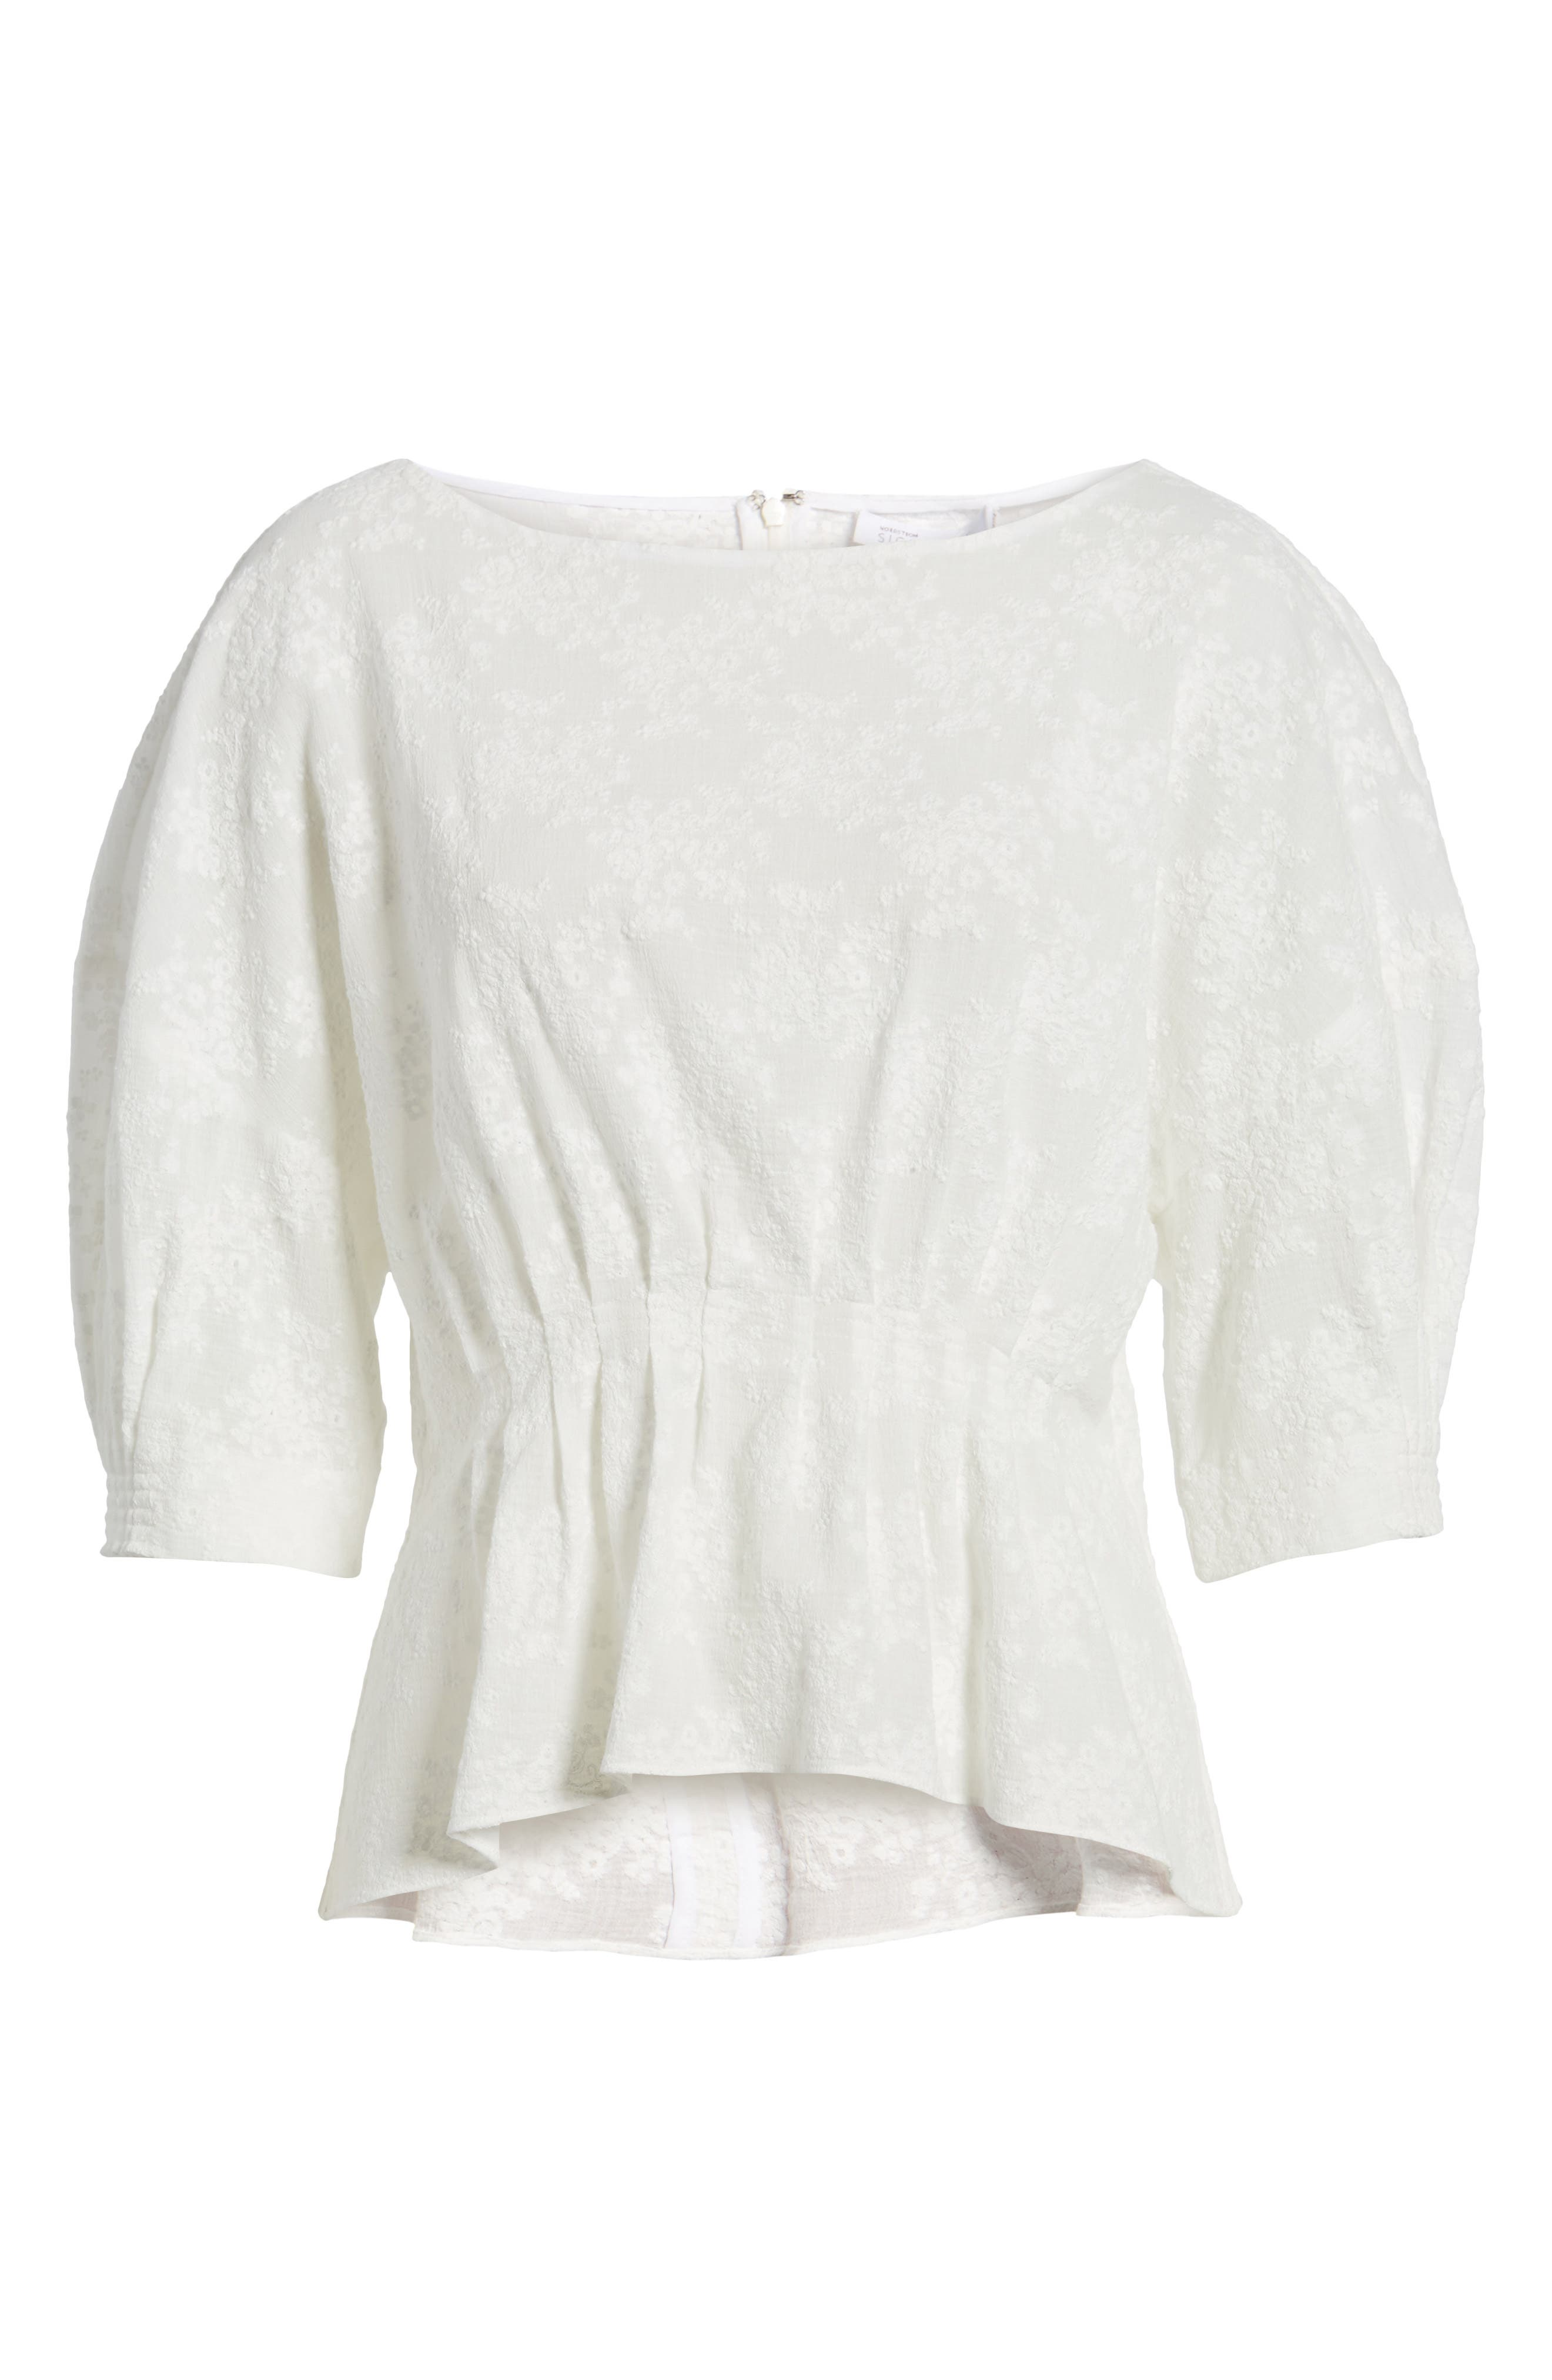 NORDSTROM SIGNATURE, Embroidered Tucked Top, Alternate thumbnail 6, color, 100